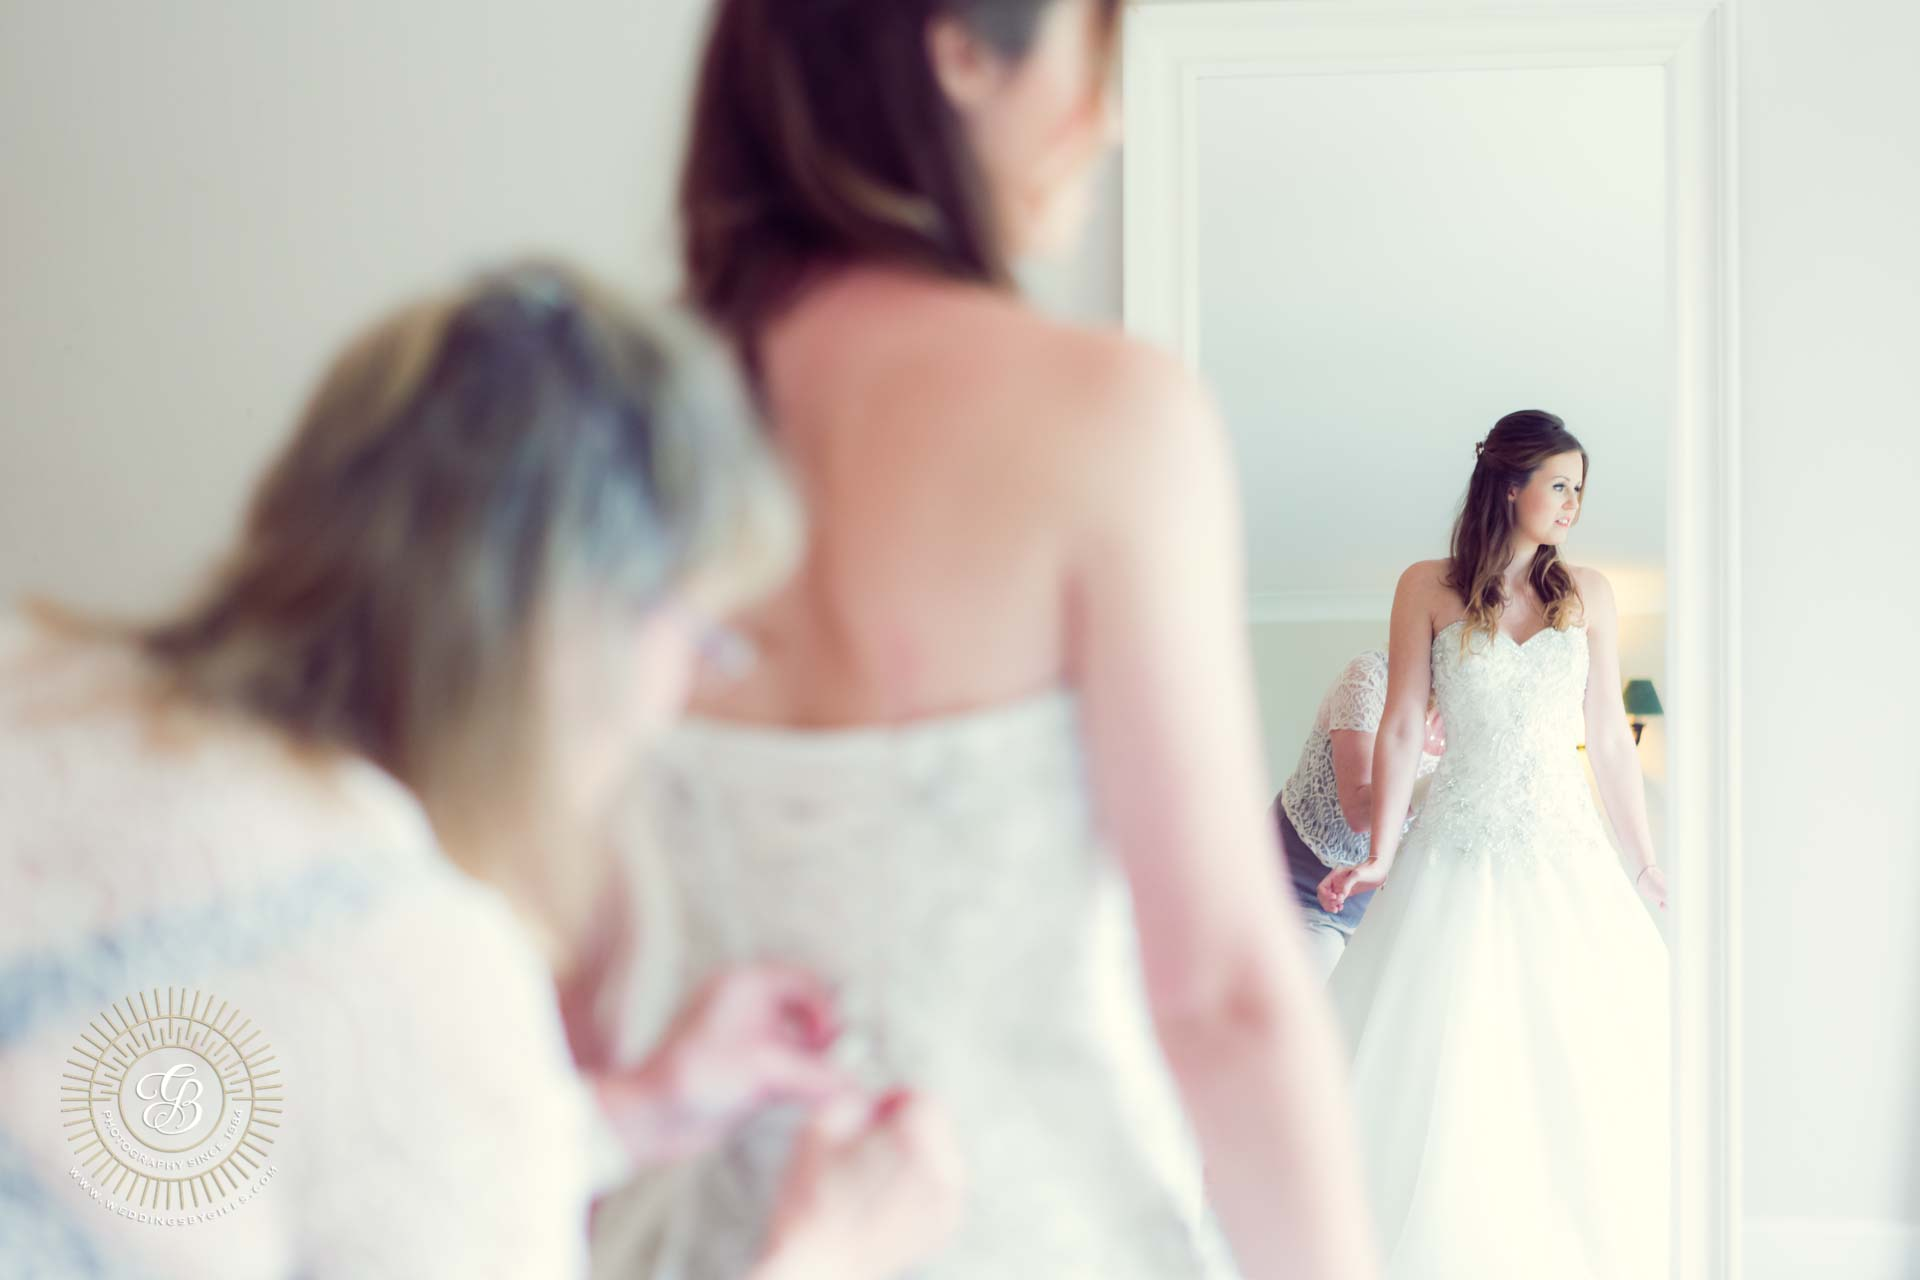 Bridal dress in the mirror